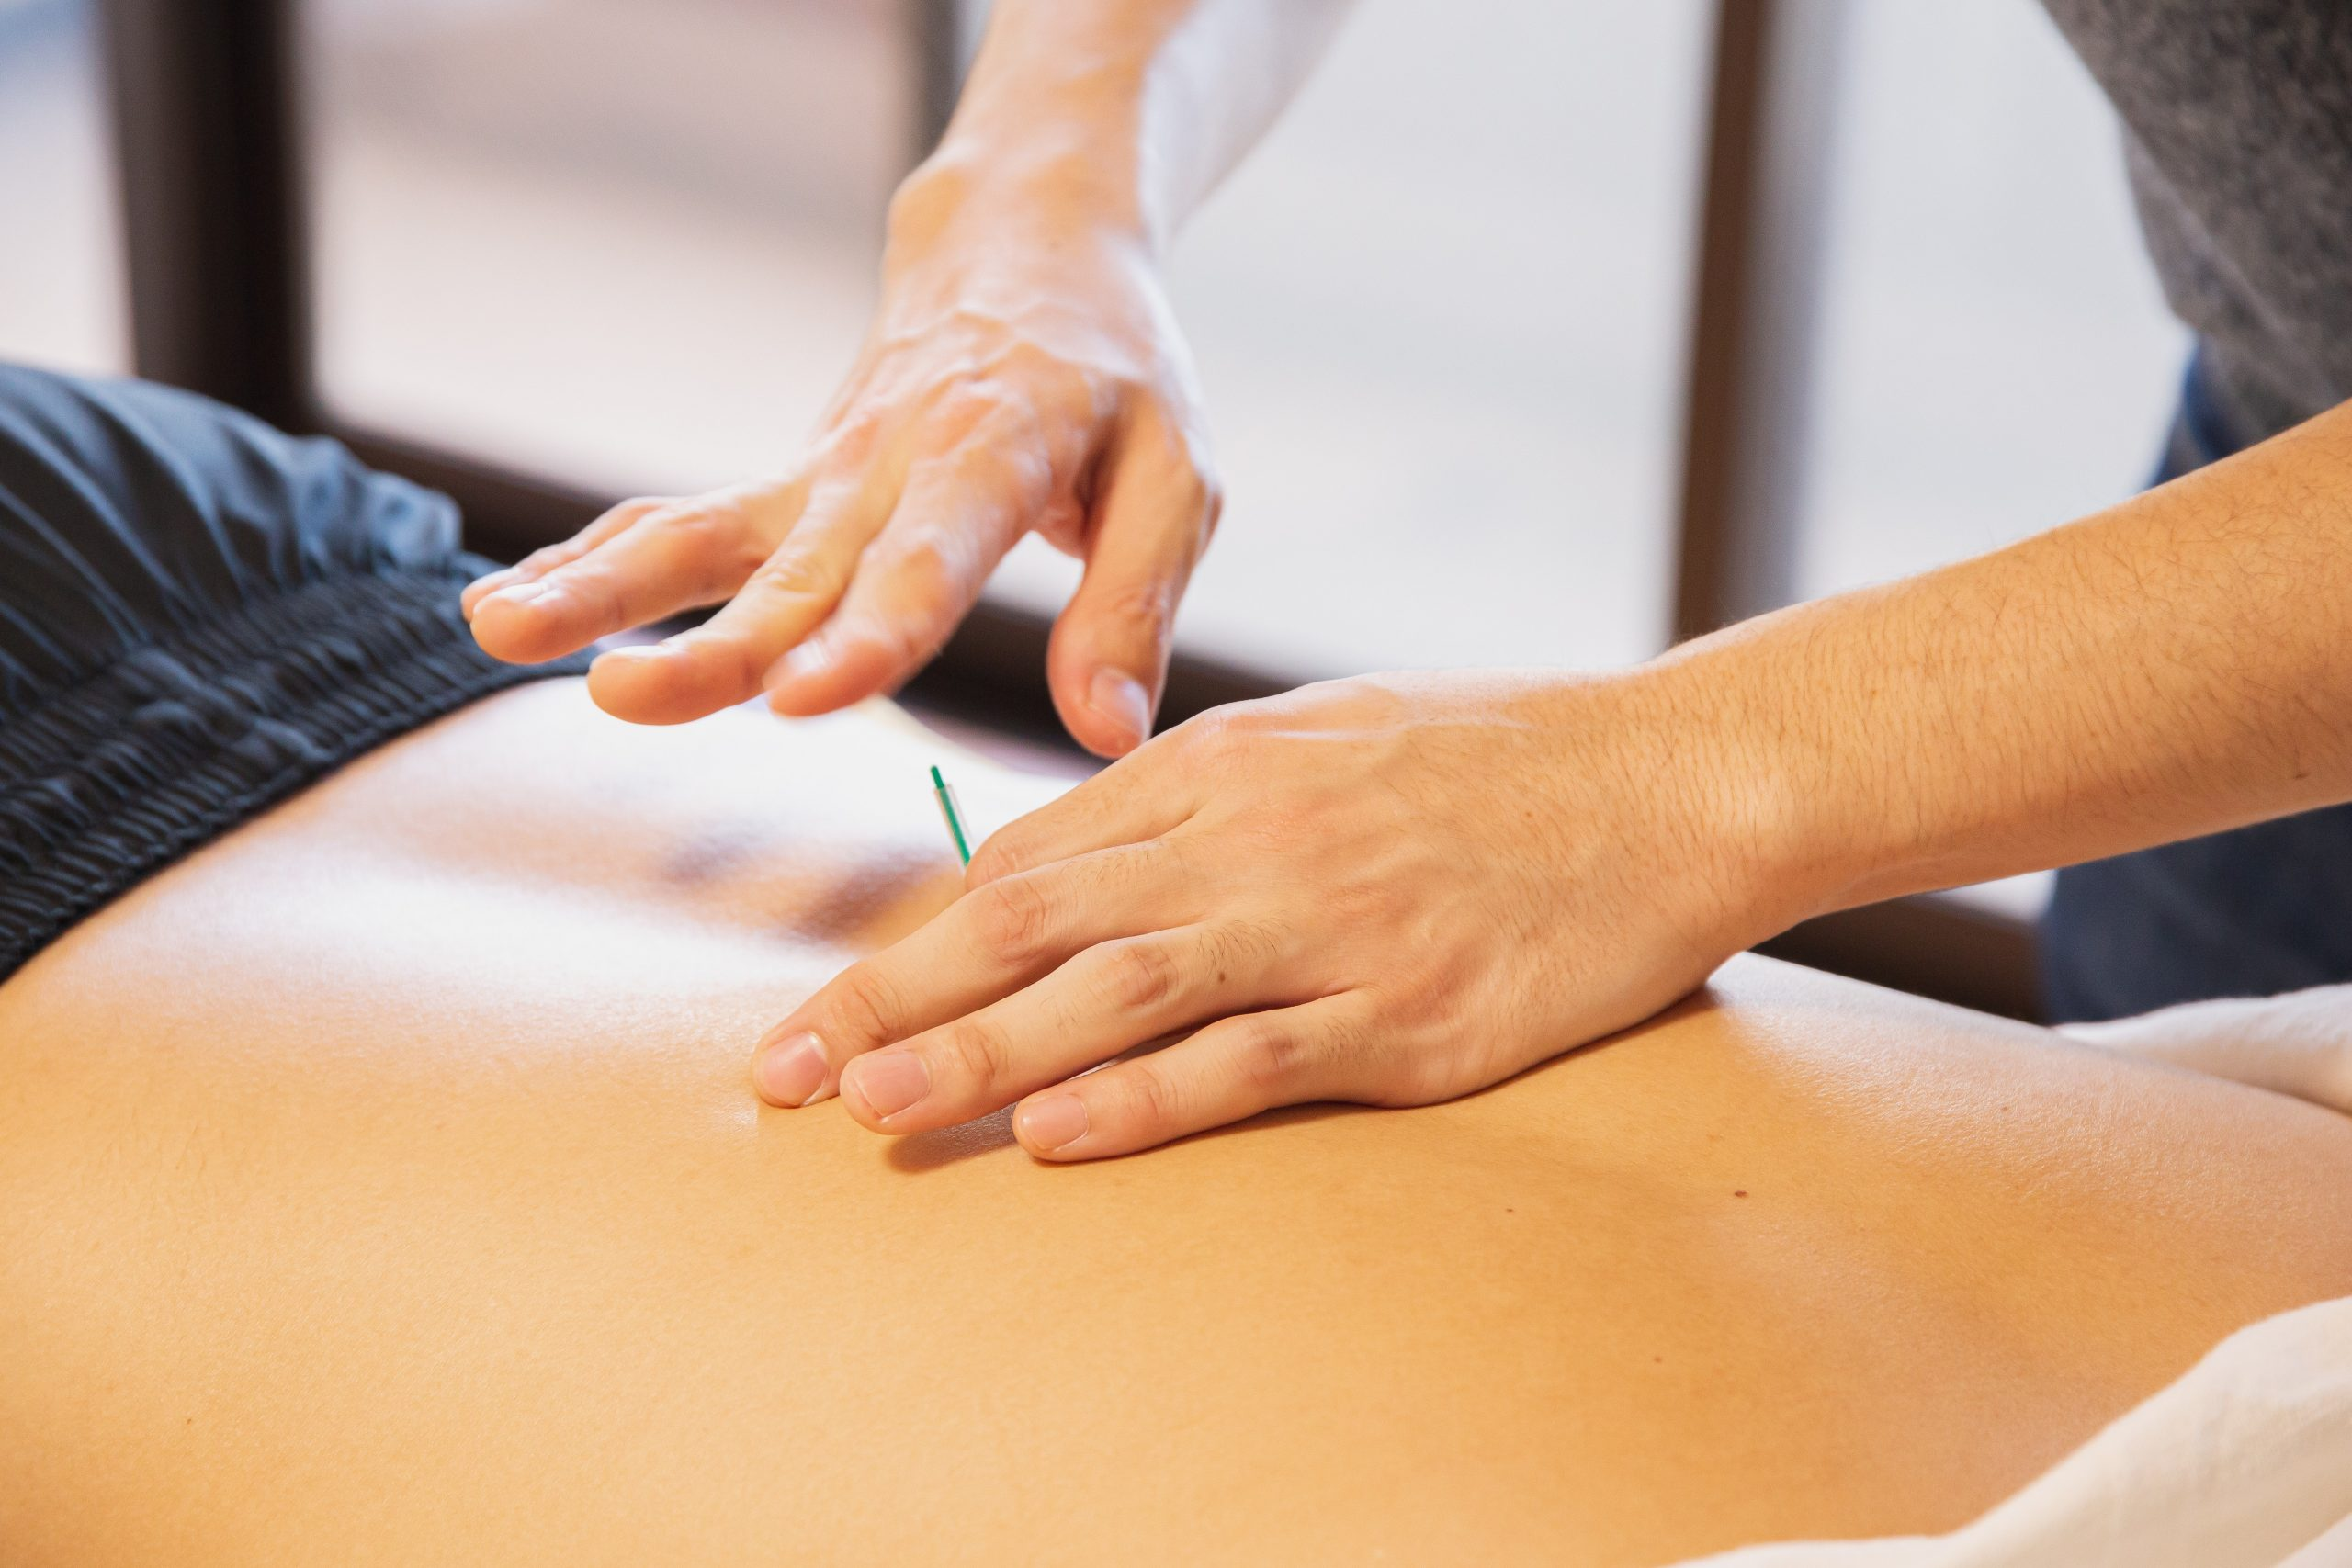 Acupuncture on the lower back